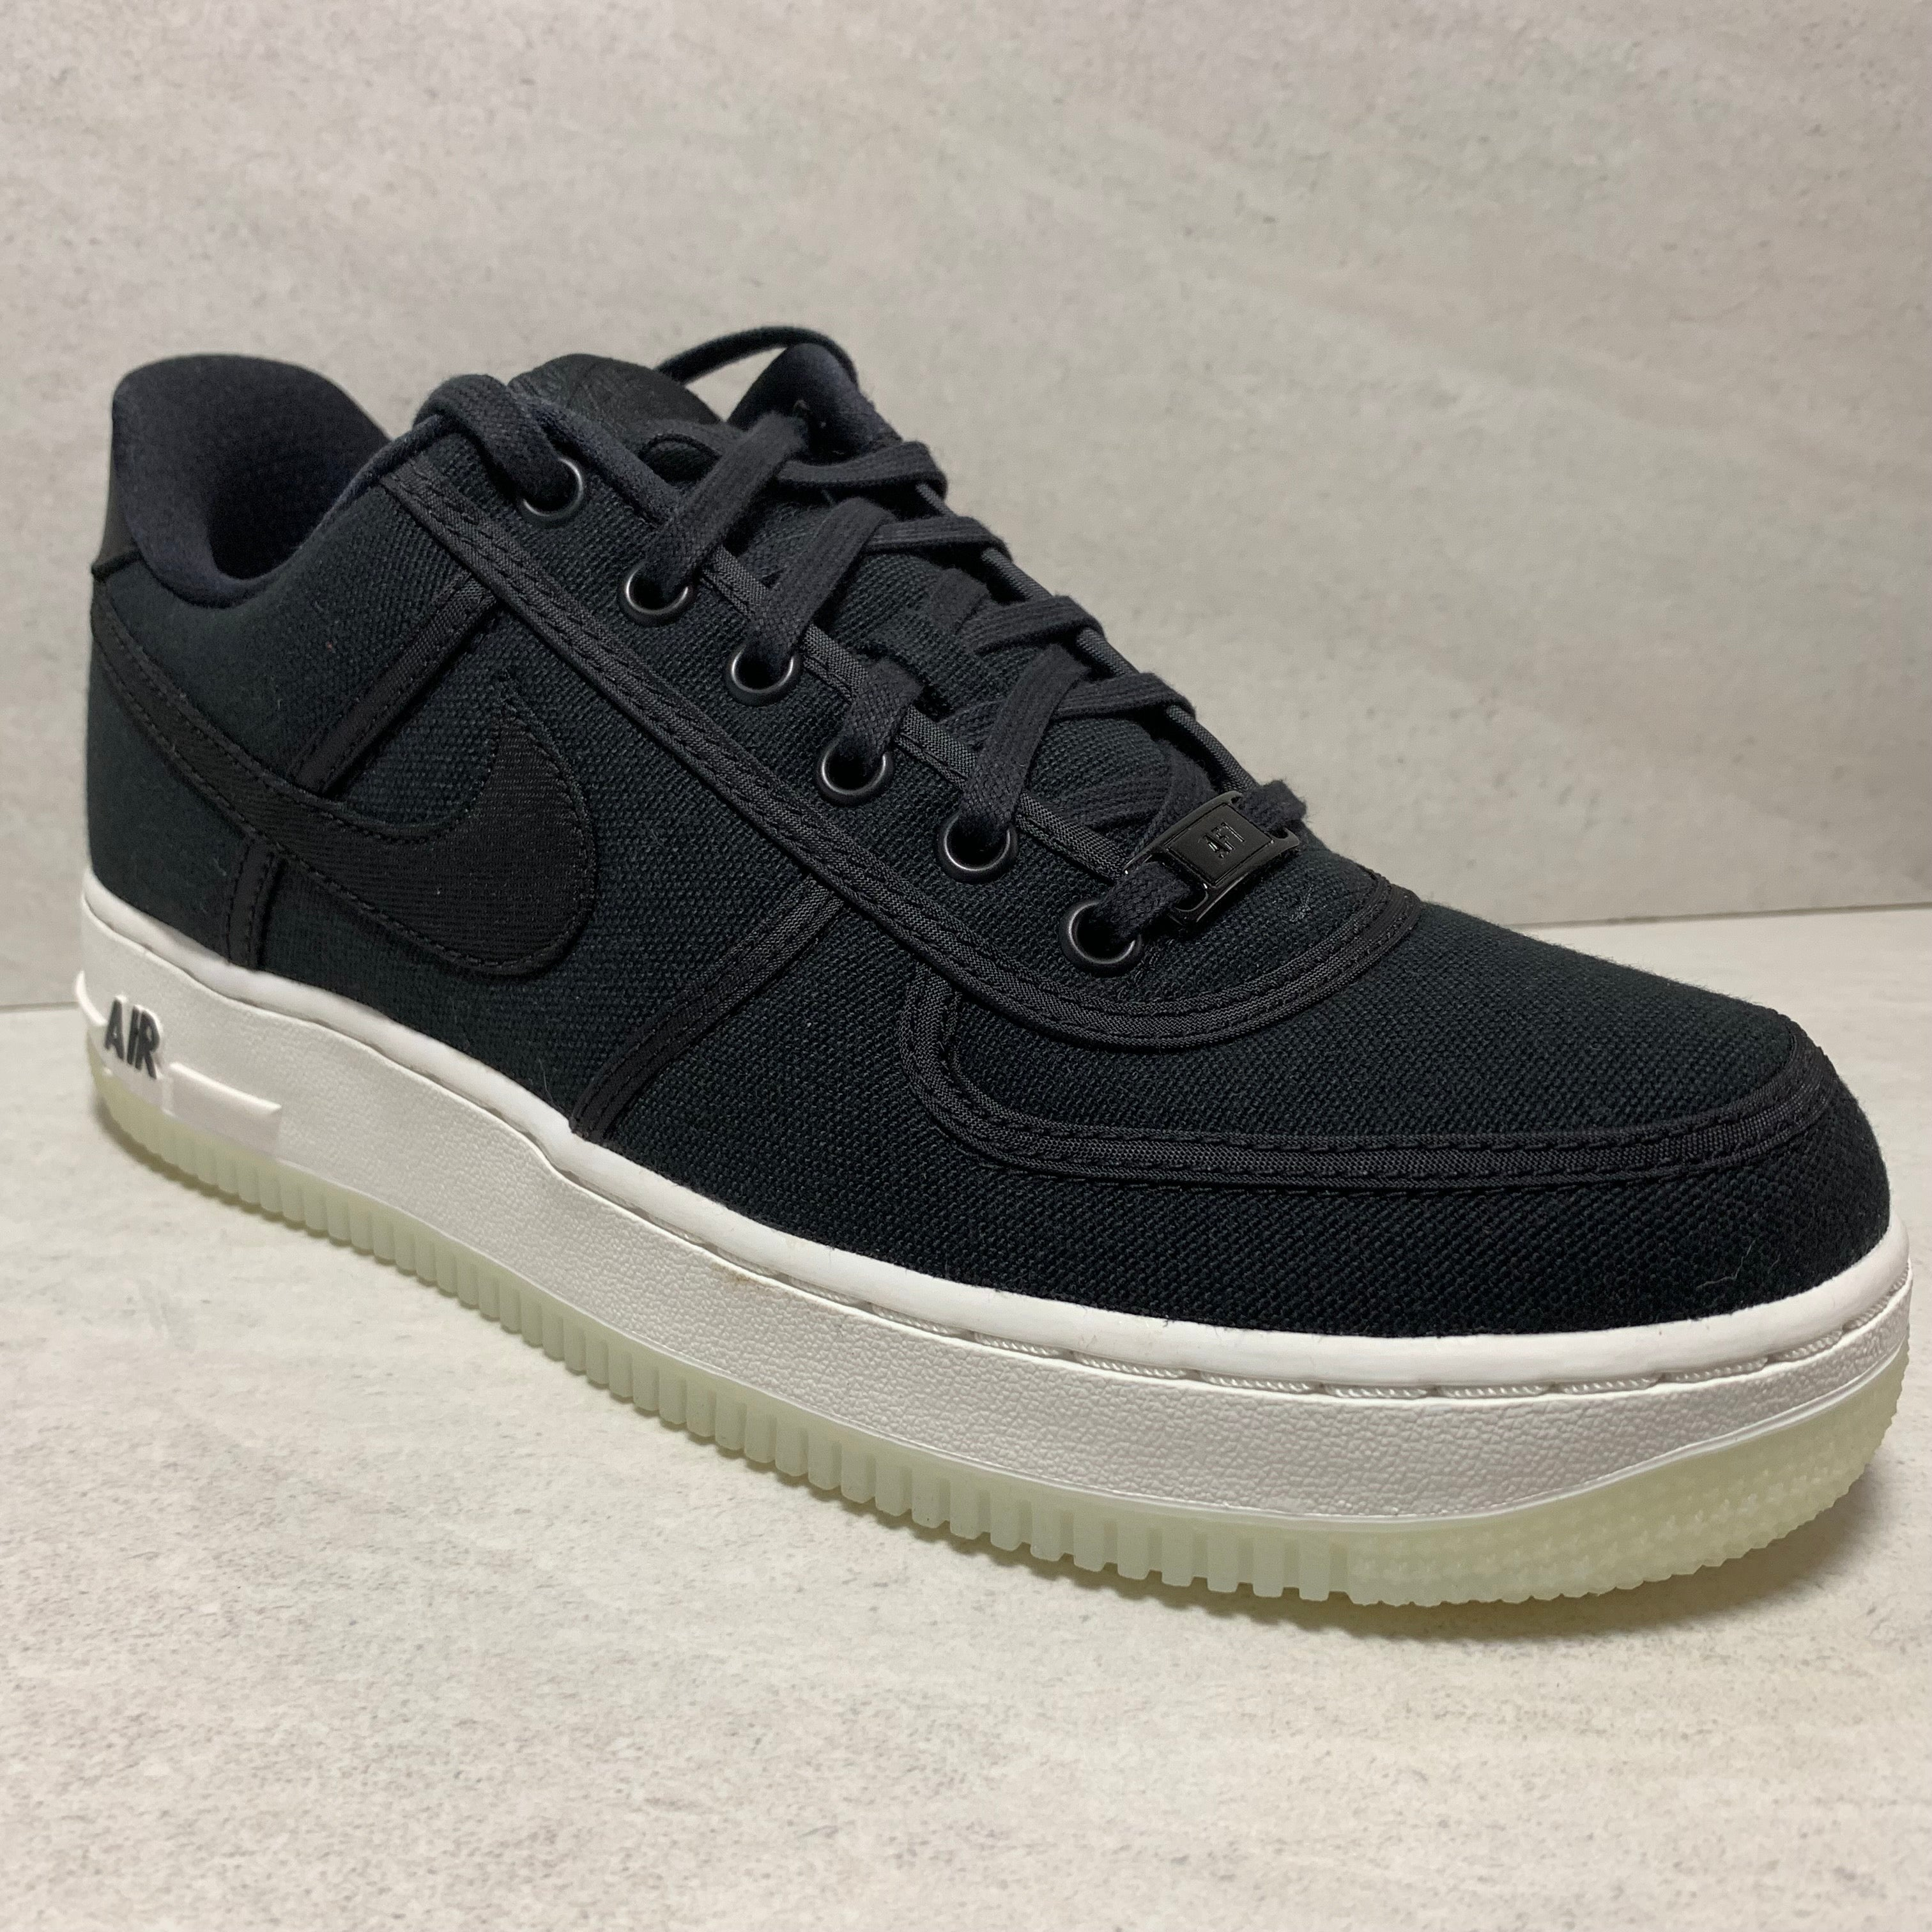 NIKE AIR FORCE 1 LOW RETRO QS SIZE 7.5